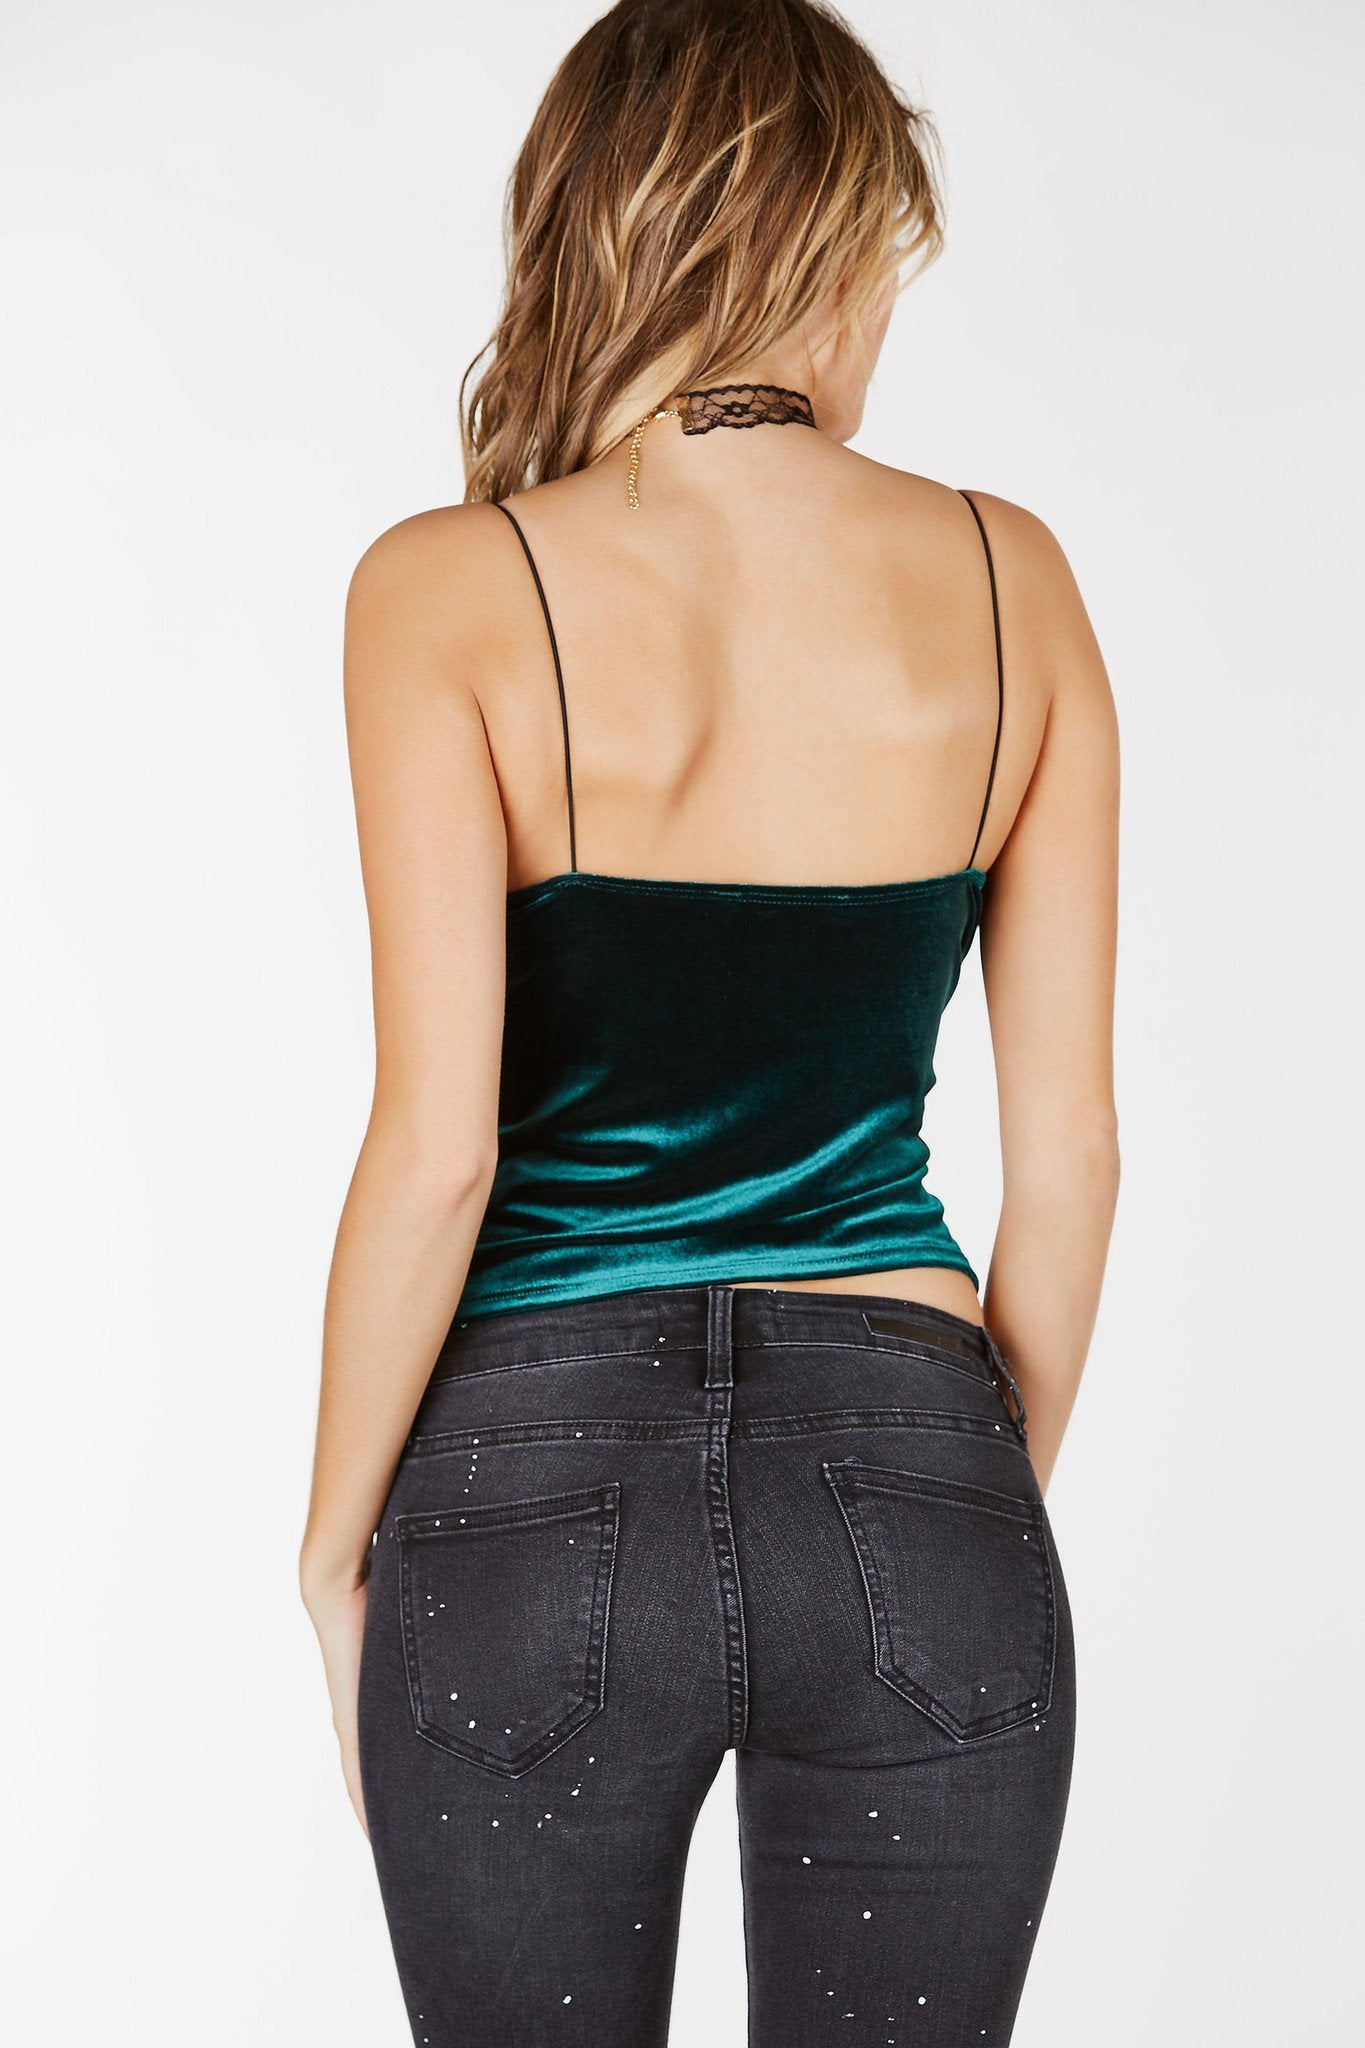 V-neckline with cord shoulder straps. Cropped straight hem with velvet finish.